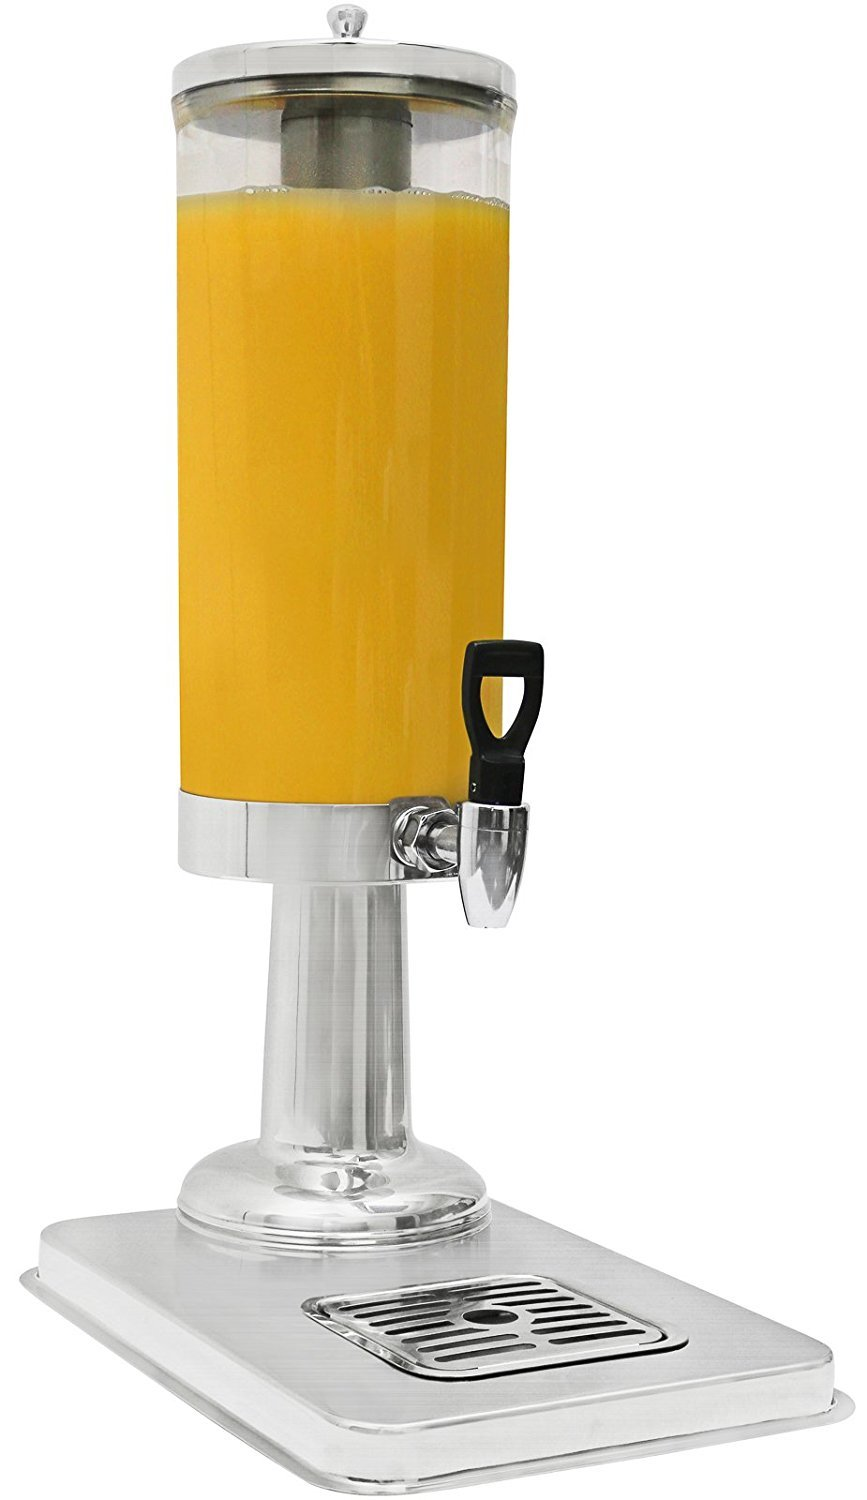 Estilo Heavy Duty Stainless Steel Drink Dispenser, 3.5L EST9442